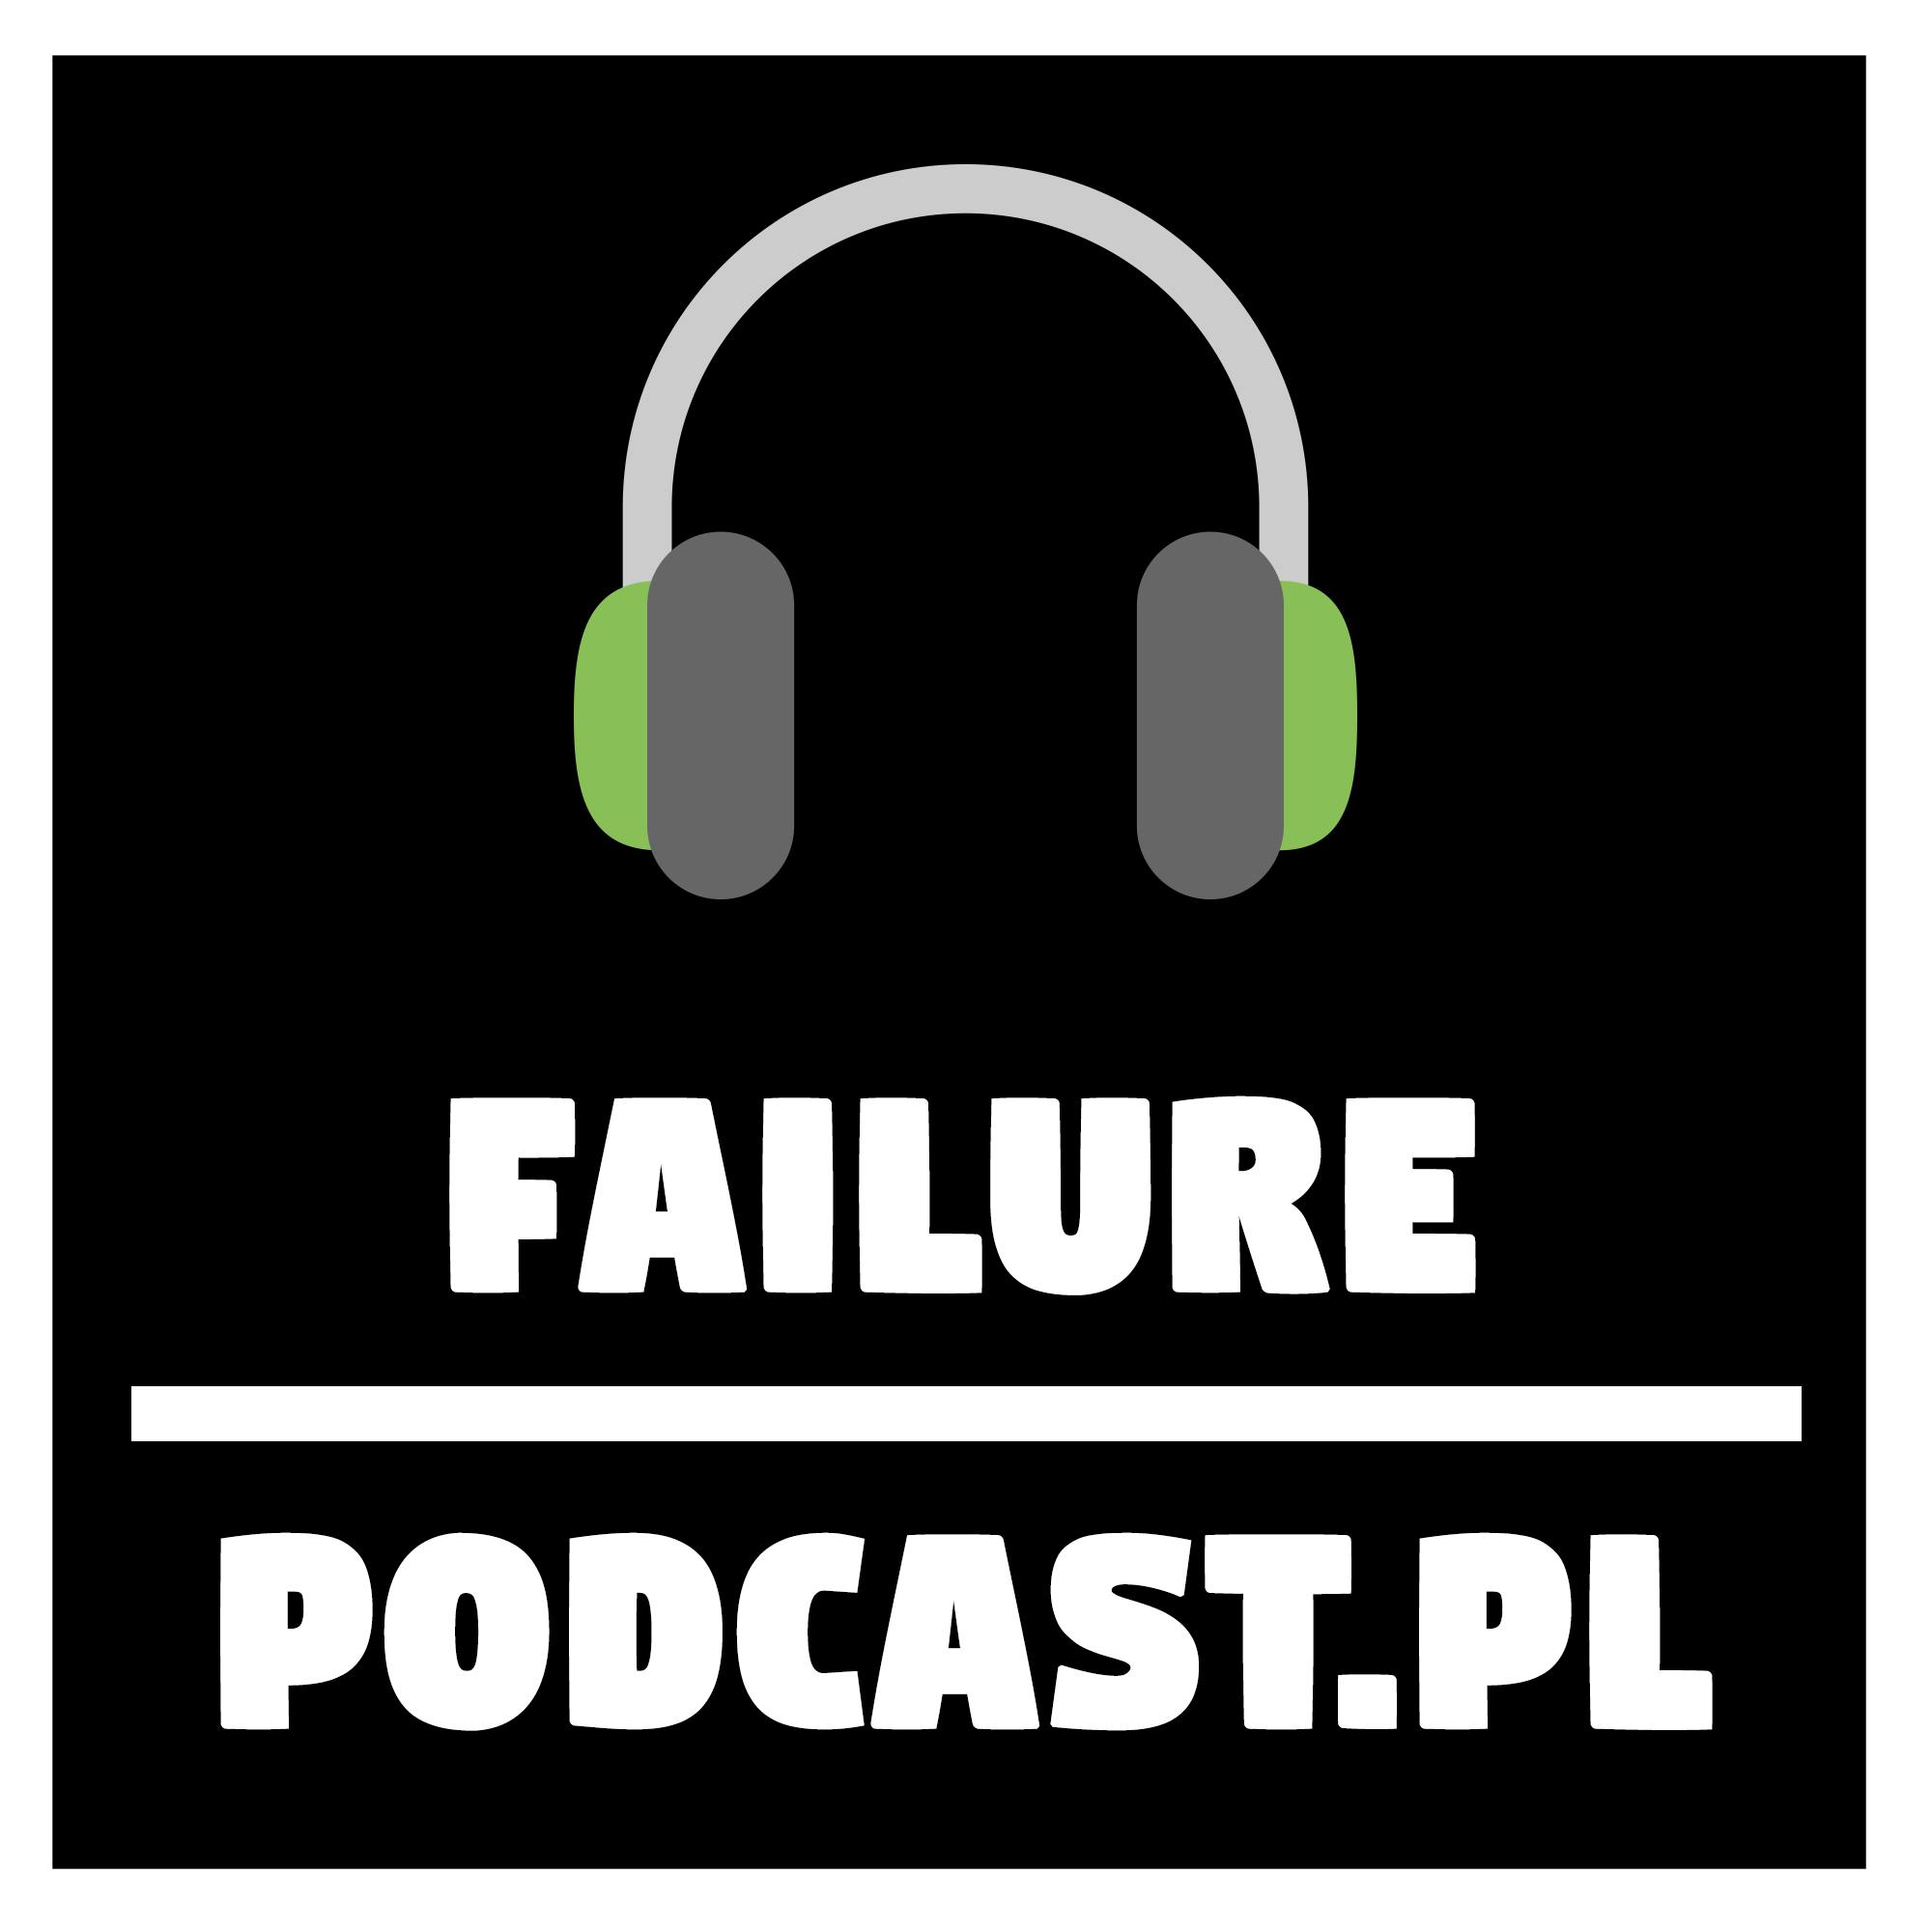 FailurePodcast.pl